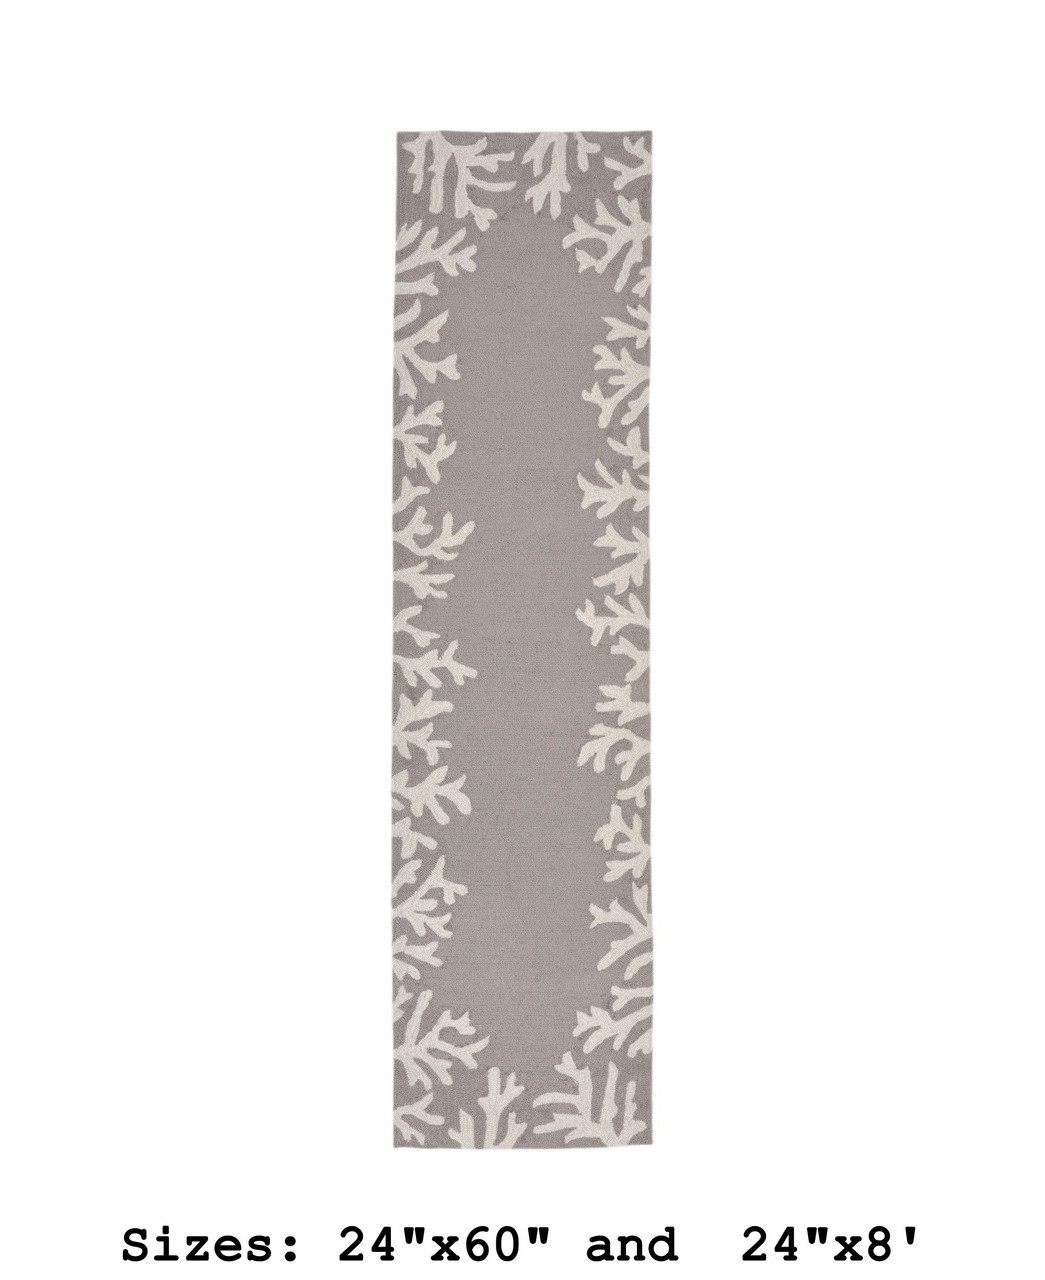 Capri Coral Border Indoor/Outdoor Rug -  Silver - Runner